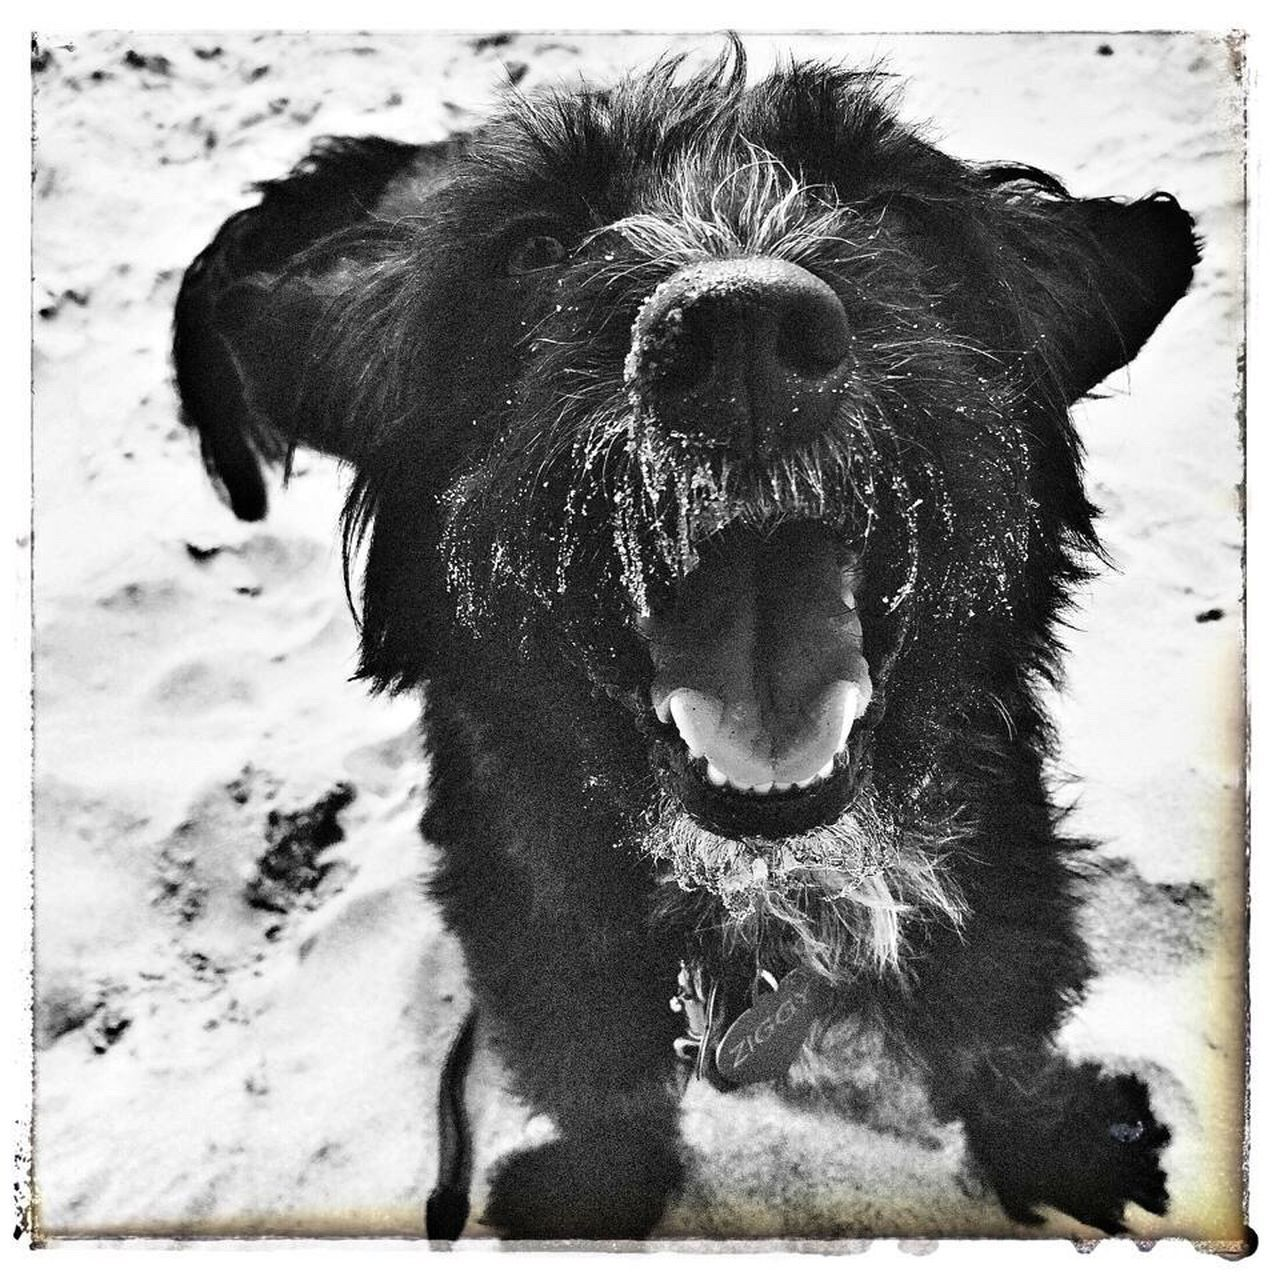 Ziggybraveheart. Dog Dog Love Blackandwhite Photography Blackandwhite Black Dog Ziggy Pet Photography  Pet Dog Life Dog On Beach Happy Dog